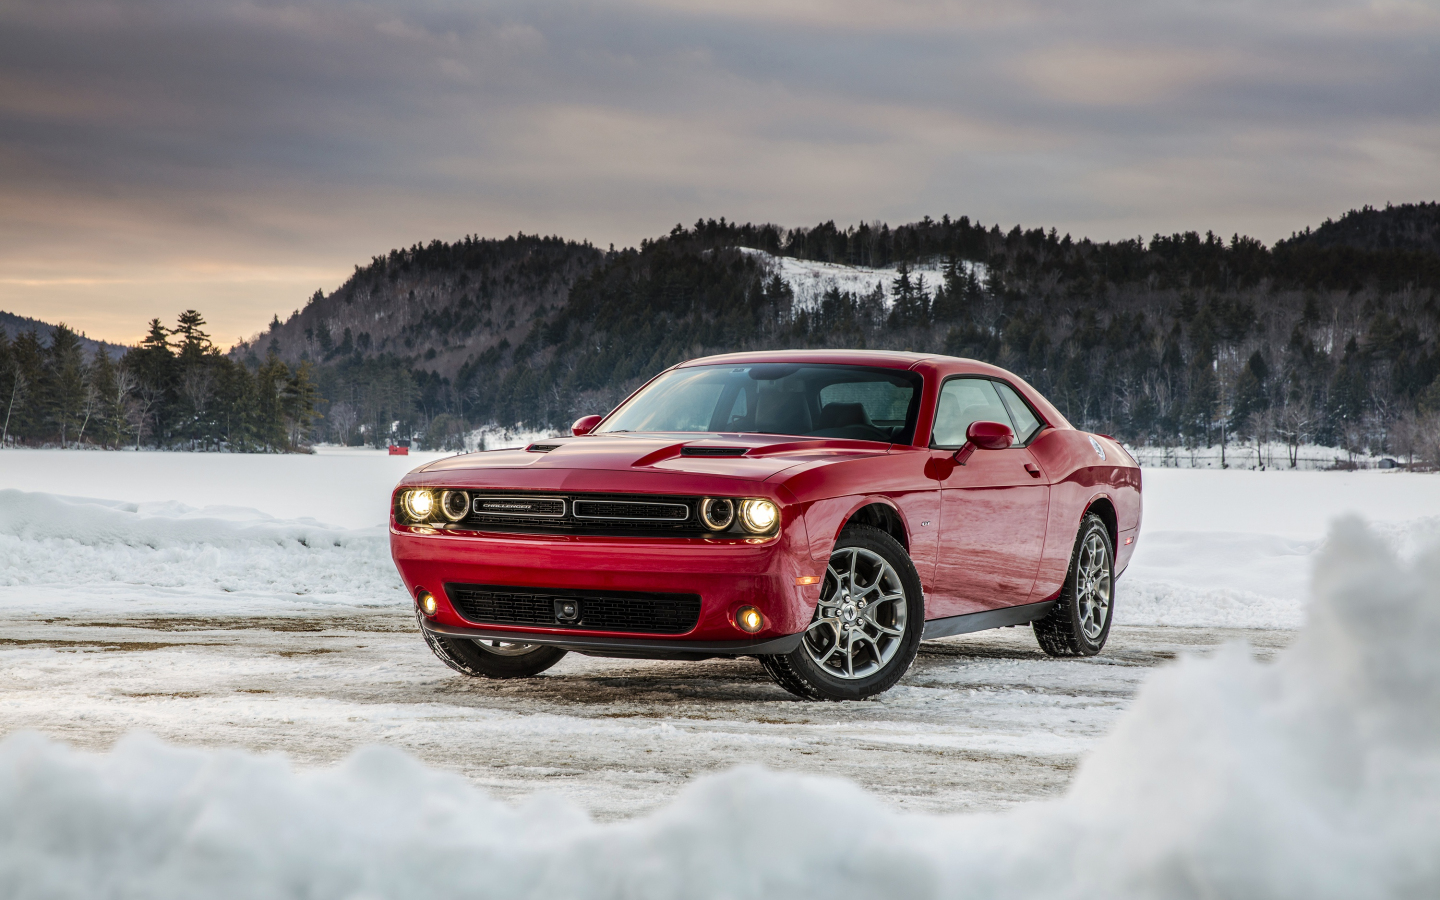 Dodge challenger, red muscle car, 1440x900 wallpaper